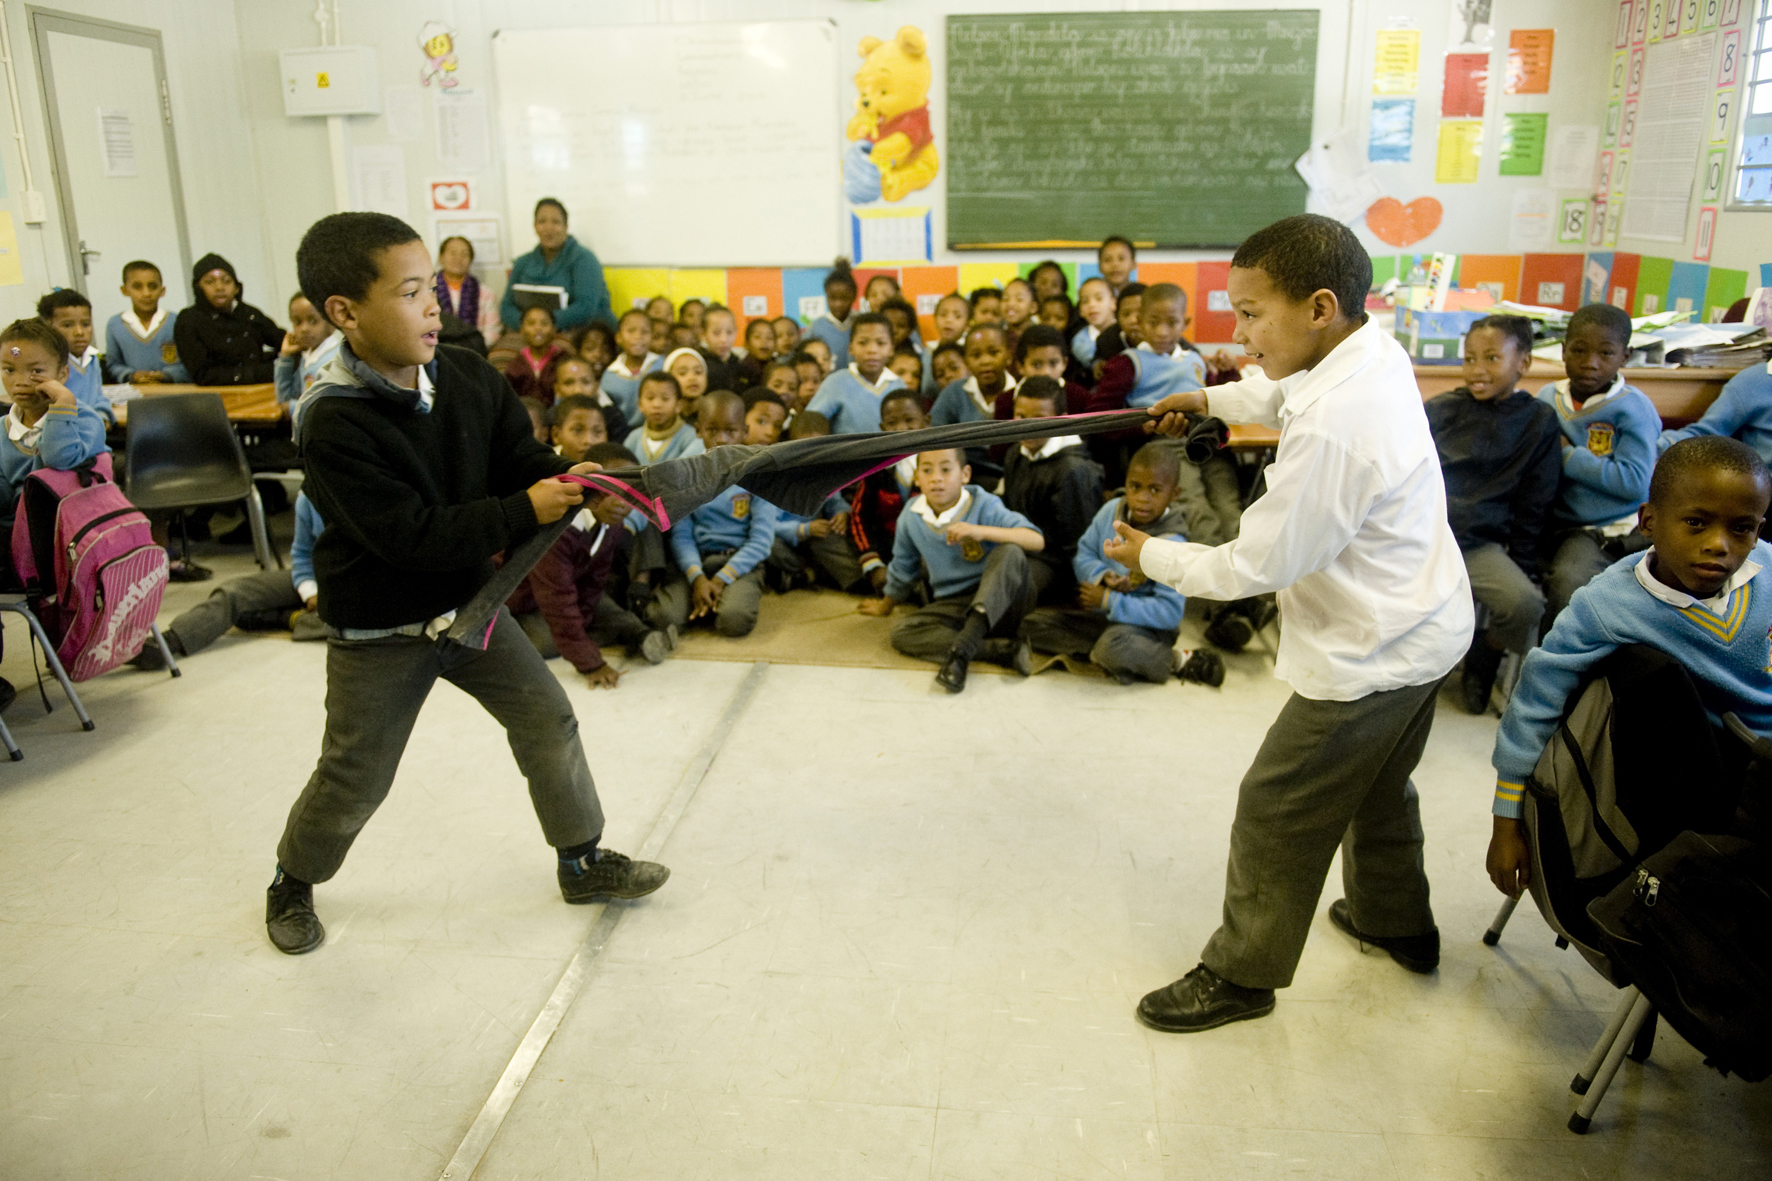 Giovanne (7) & Gevique (8) from Concordia Primary, demonstrating how to save a friends life, using a pair of pants.